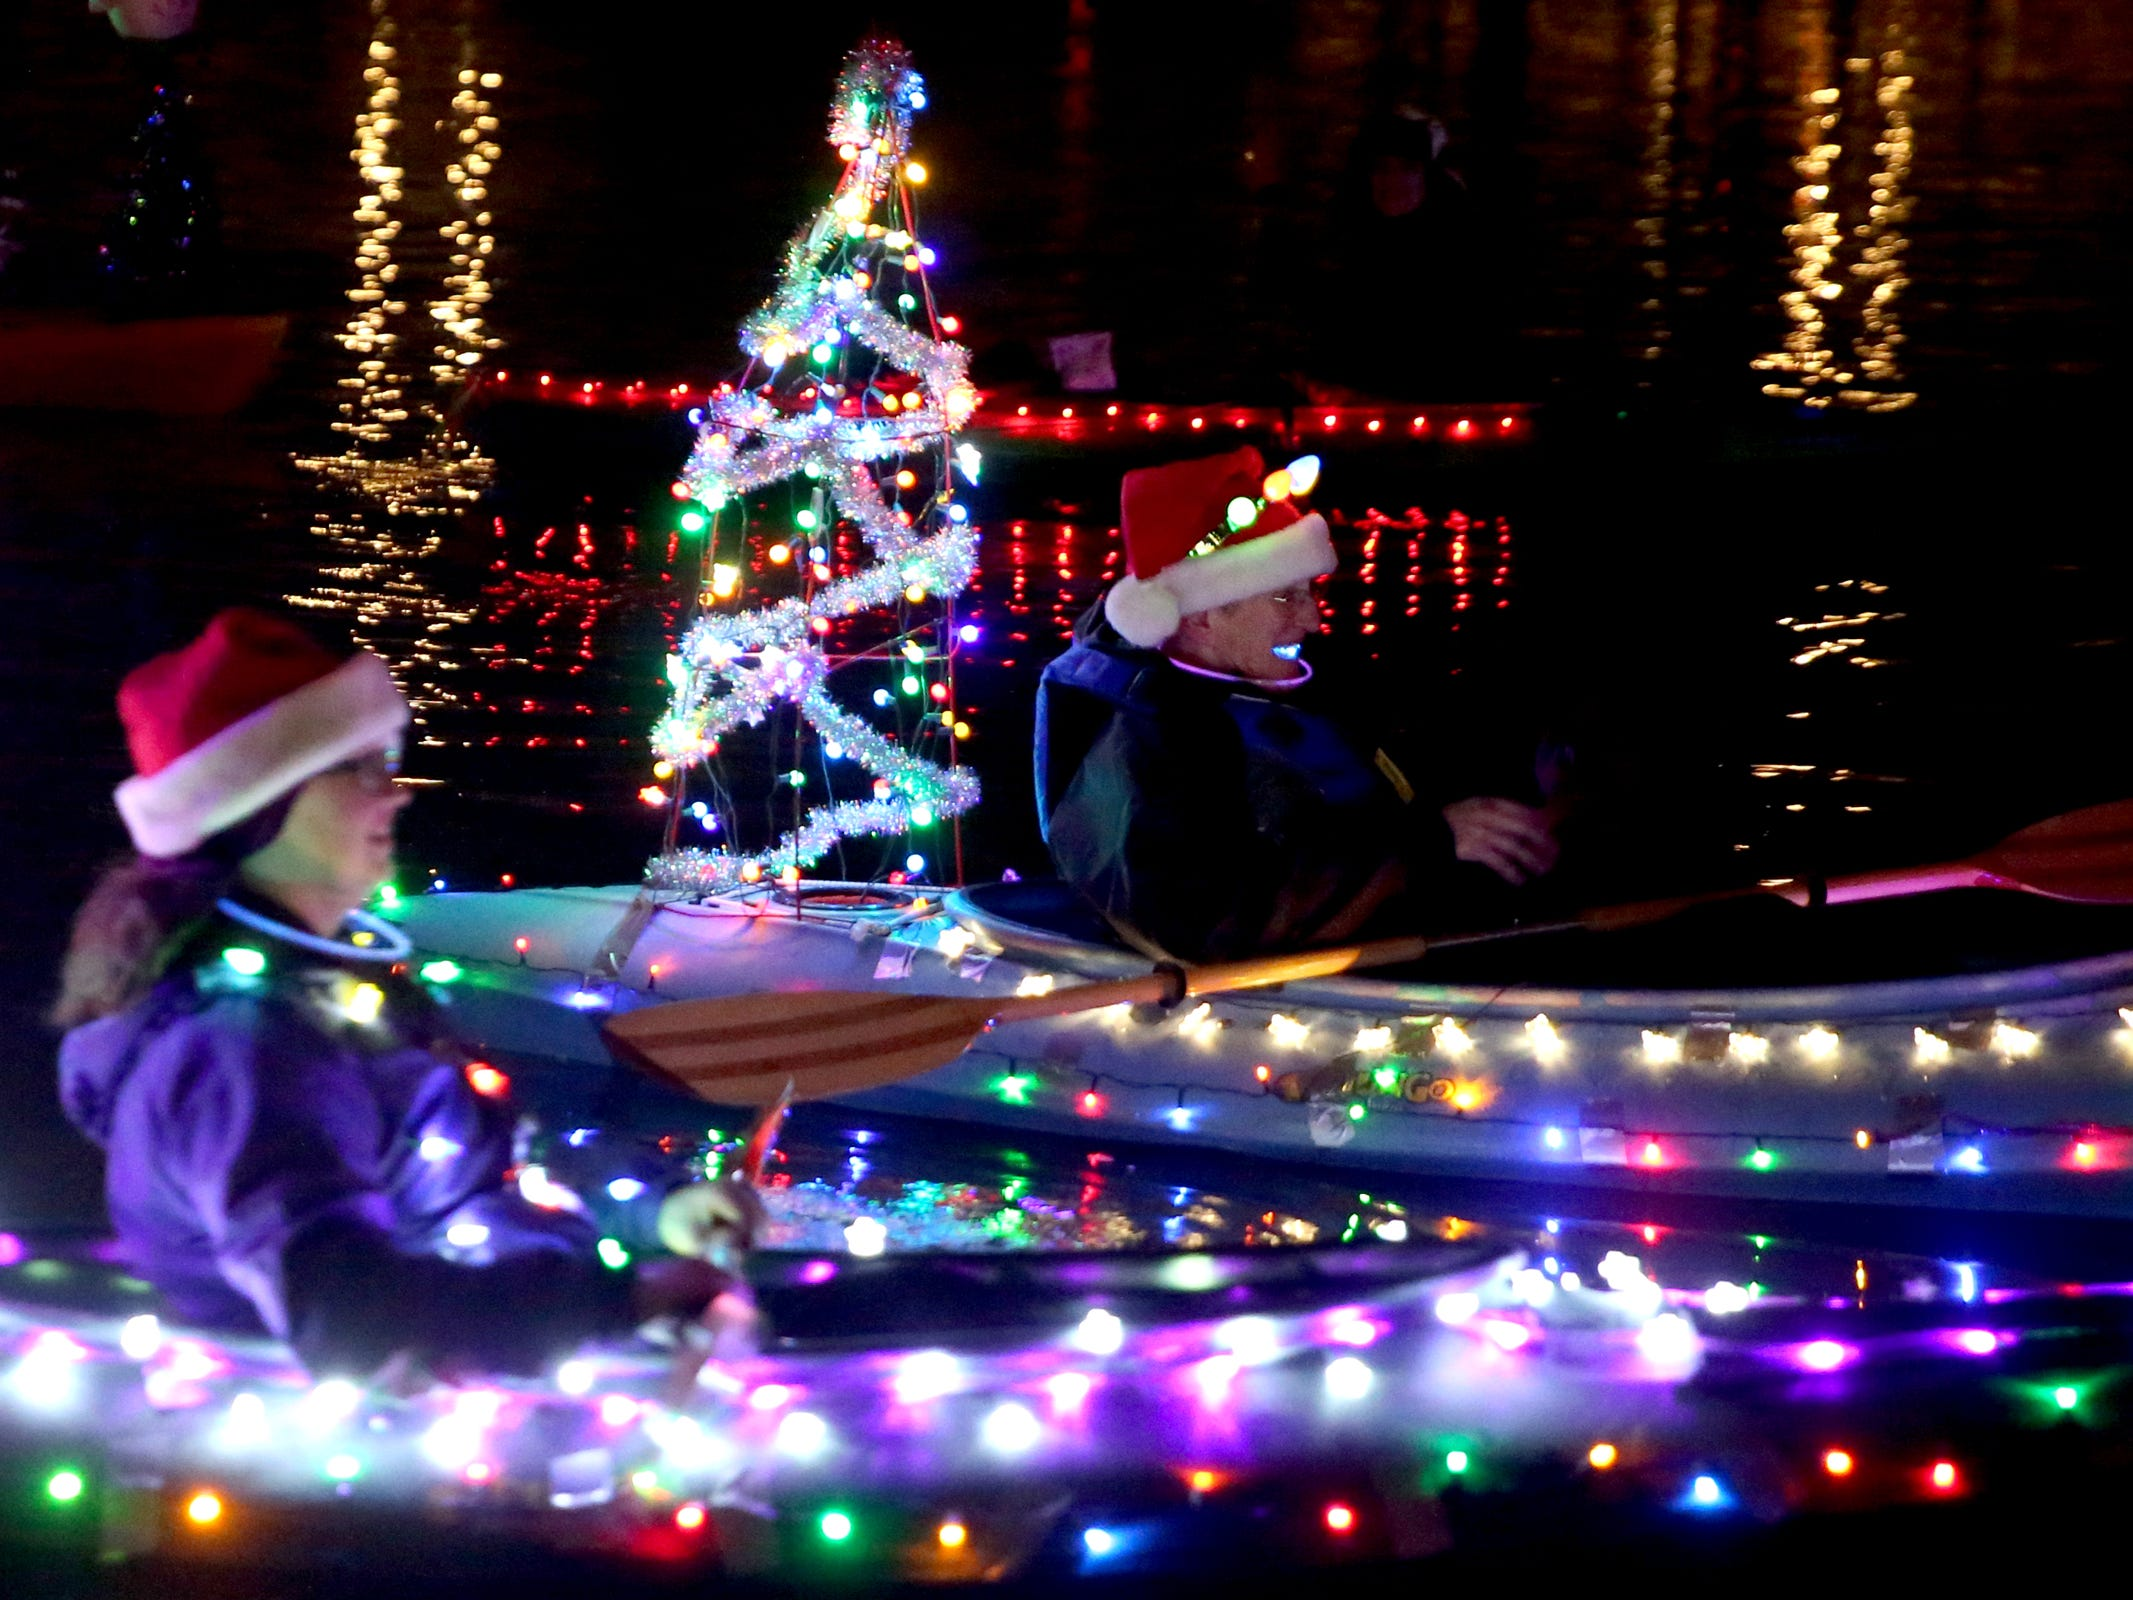 Women kayak during the 14th annual Winter Solstice Illuminata Regatta on the Willamette River at Riverfront Park in Salem on Saturday, Dec. 15, 2018.